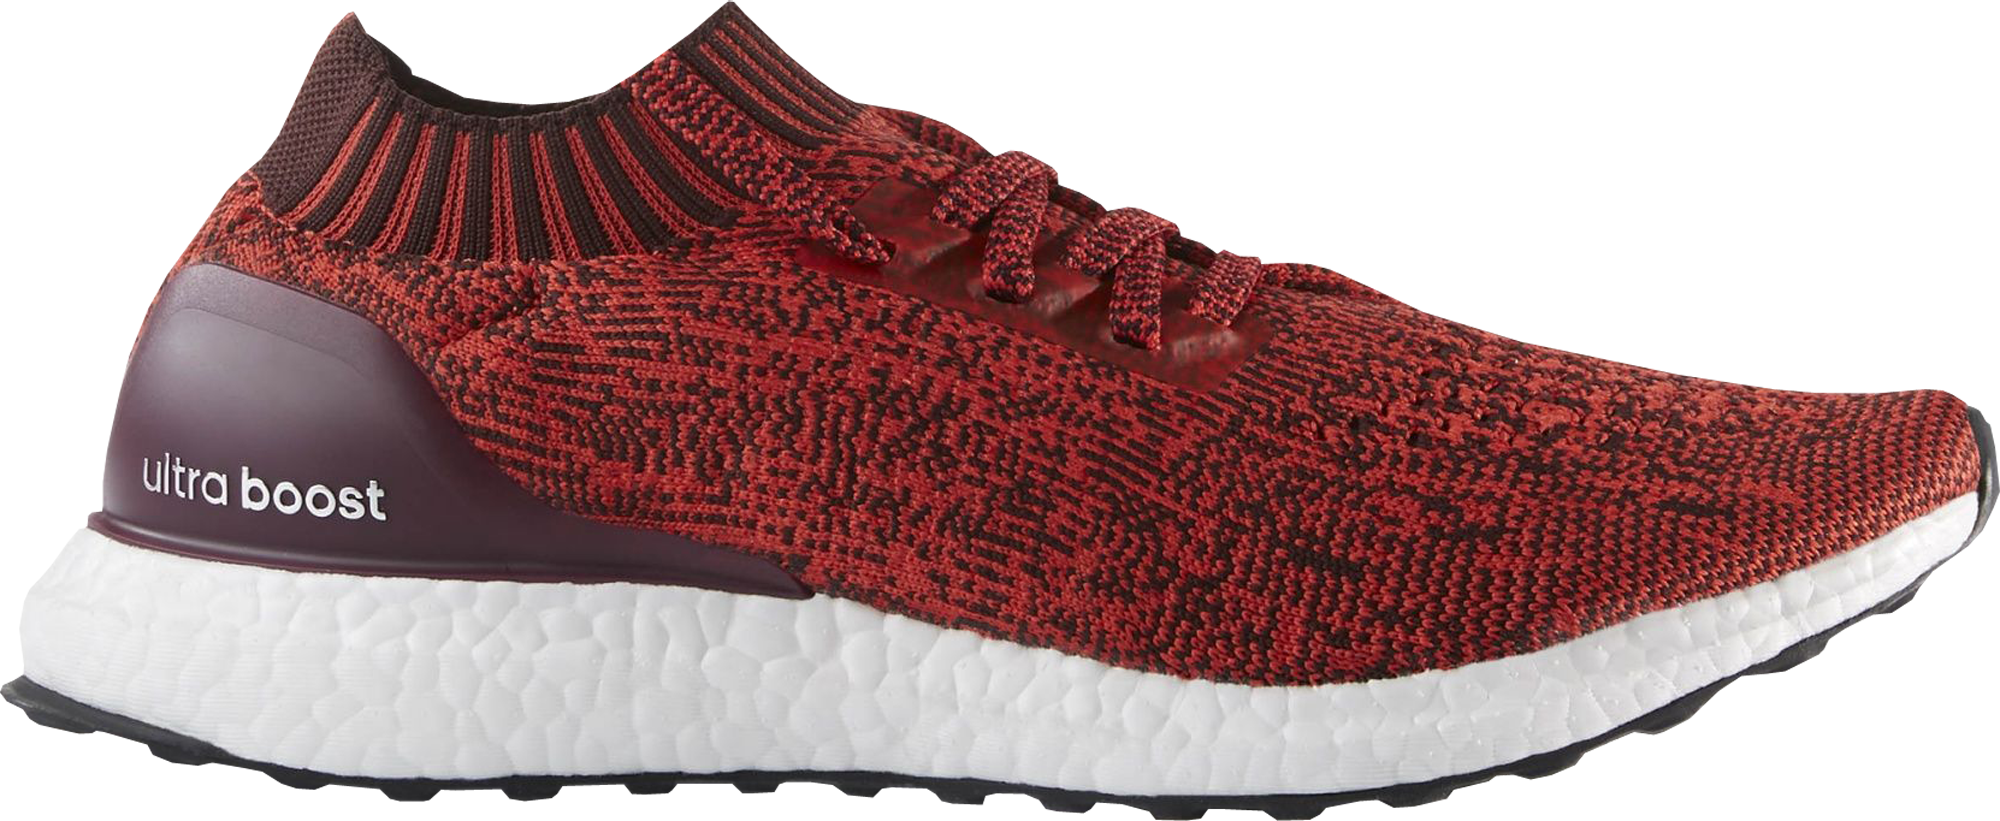 3e7dac7f7 ... clearance adidas ultra boost uncaged tactile red dark burgundy daab7  7f47f